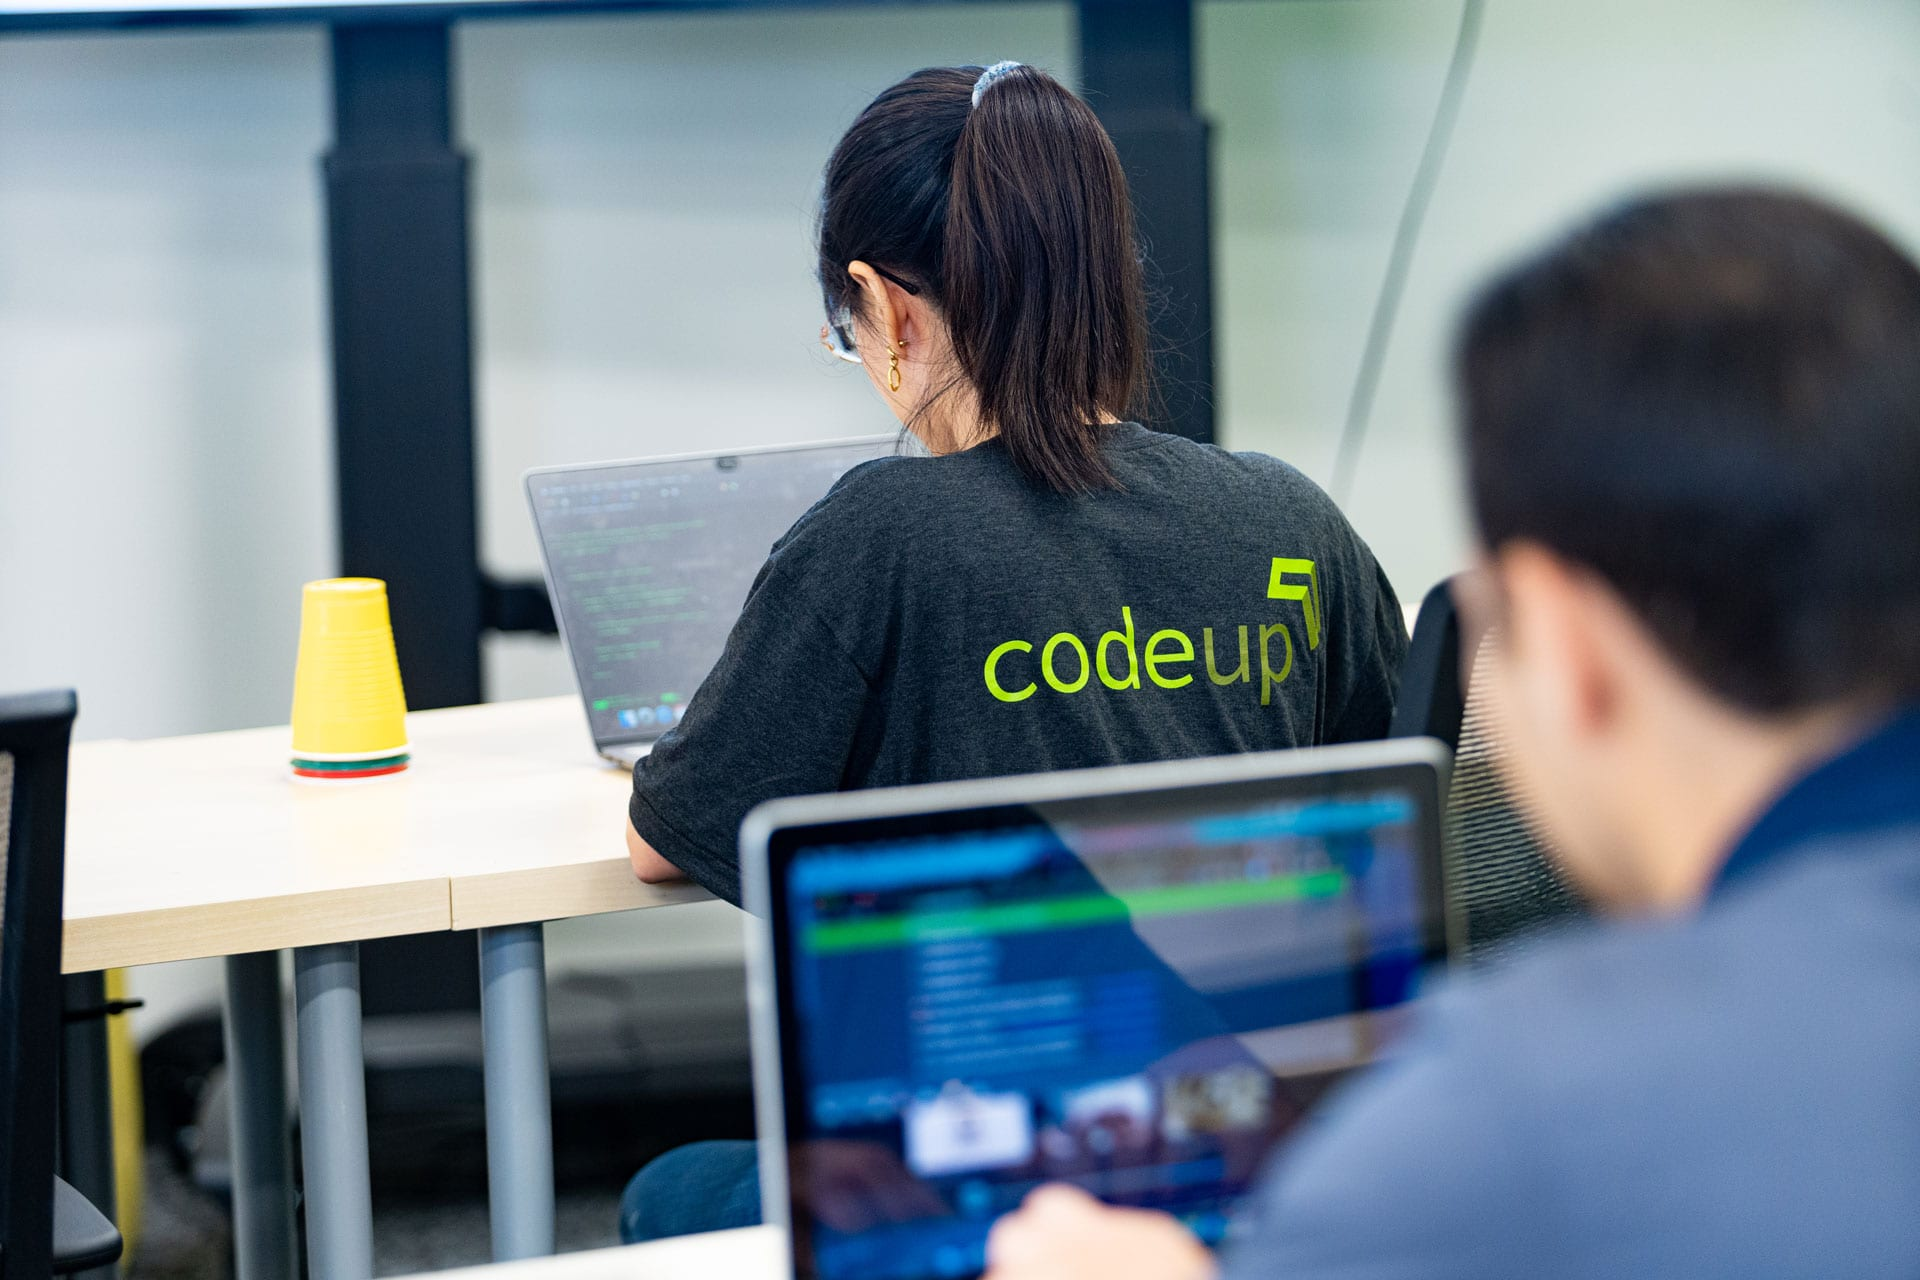 Codeup programming students